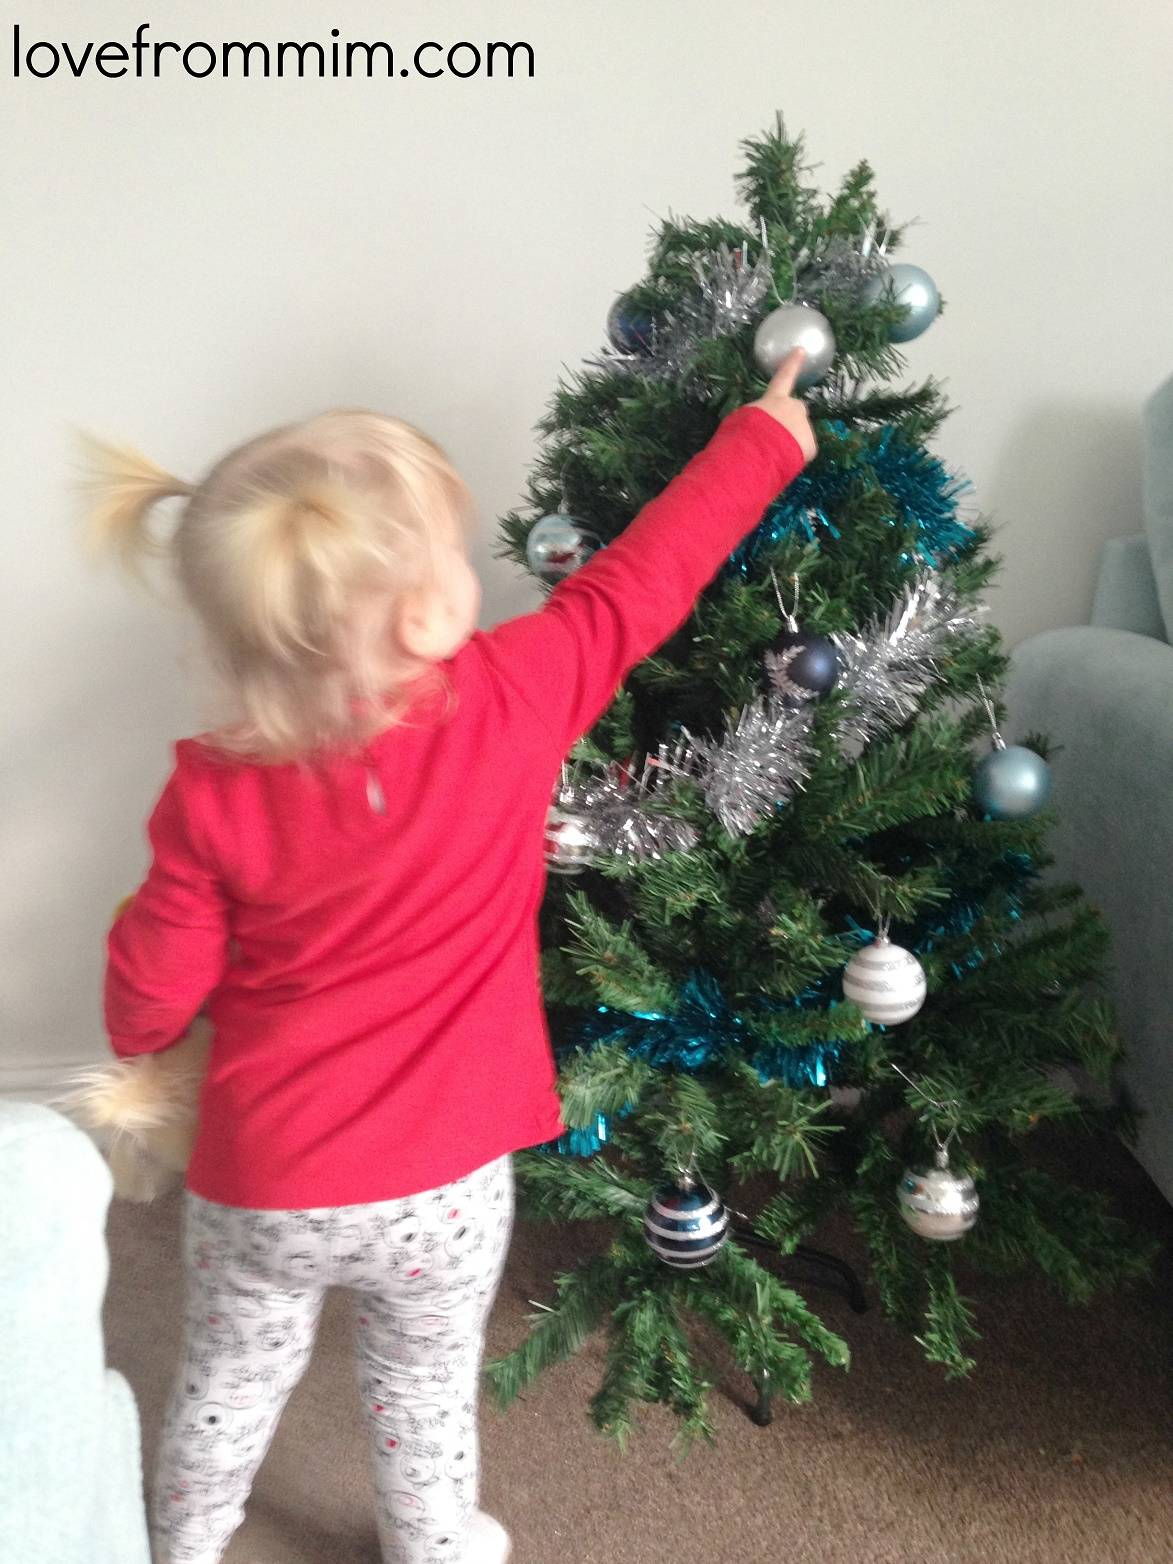 Decorating the Christmas Tree - lovefrommim.com Christmas 2014